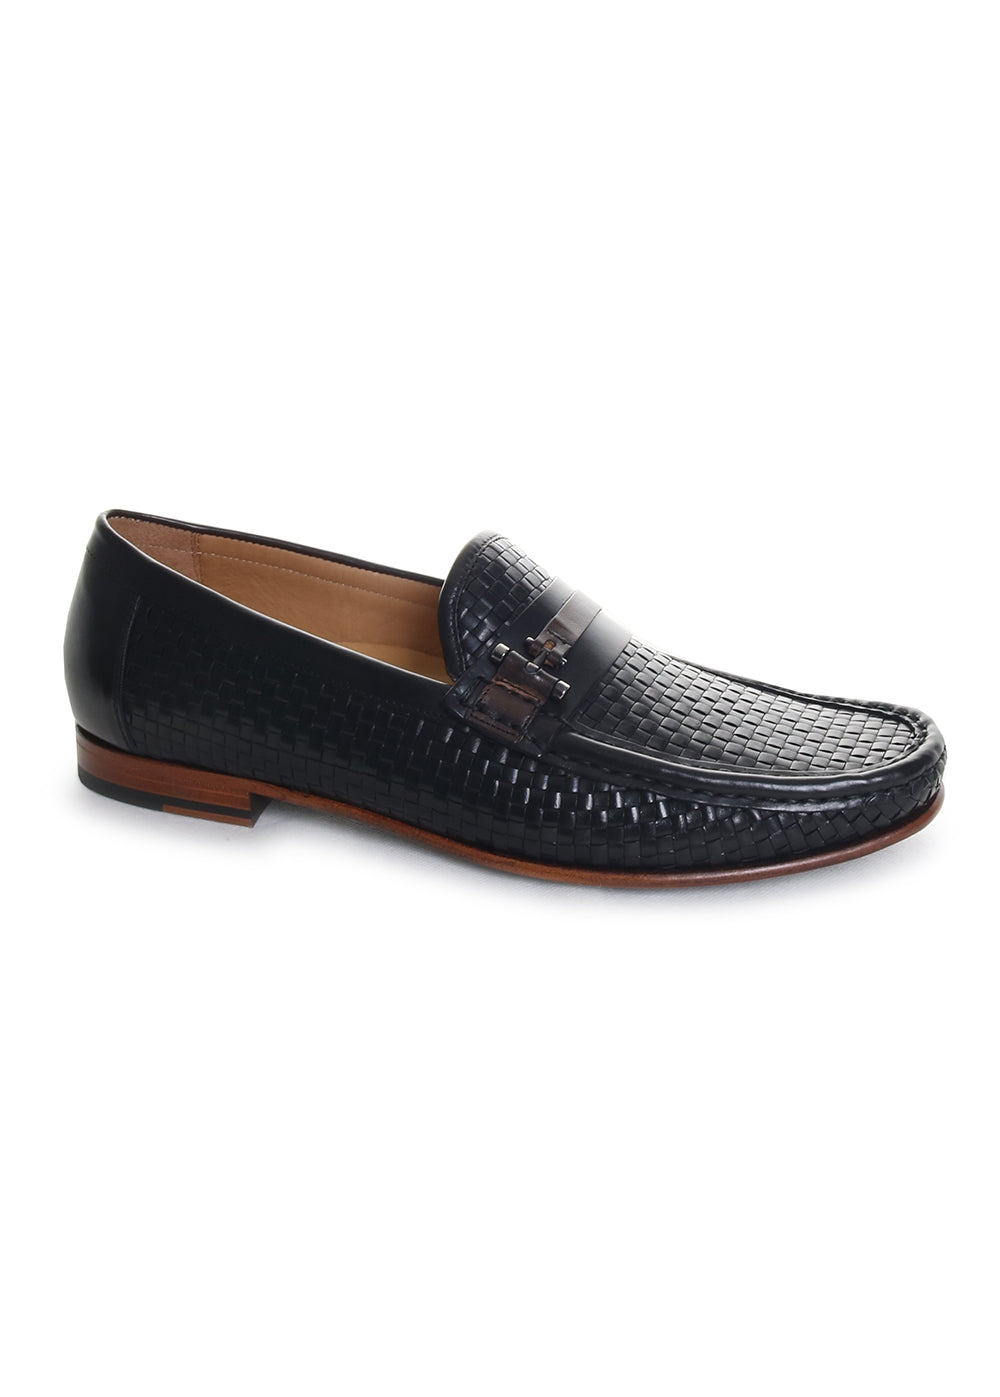 Banderas Woven Leather Bit Loafers